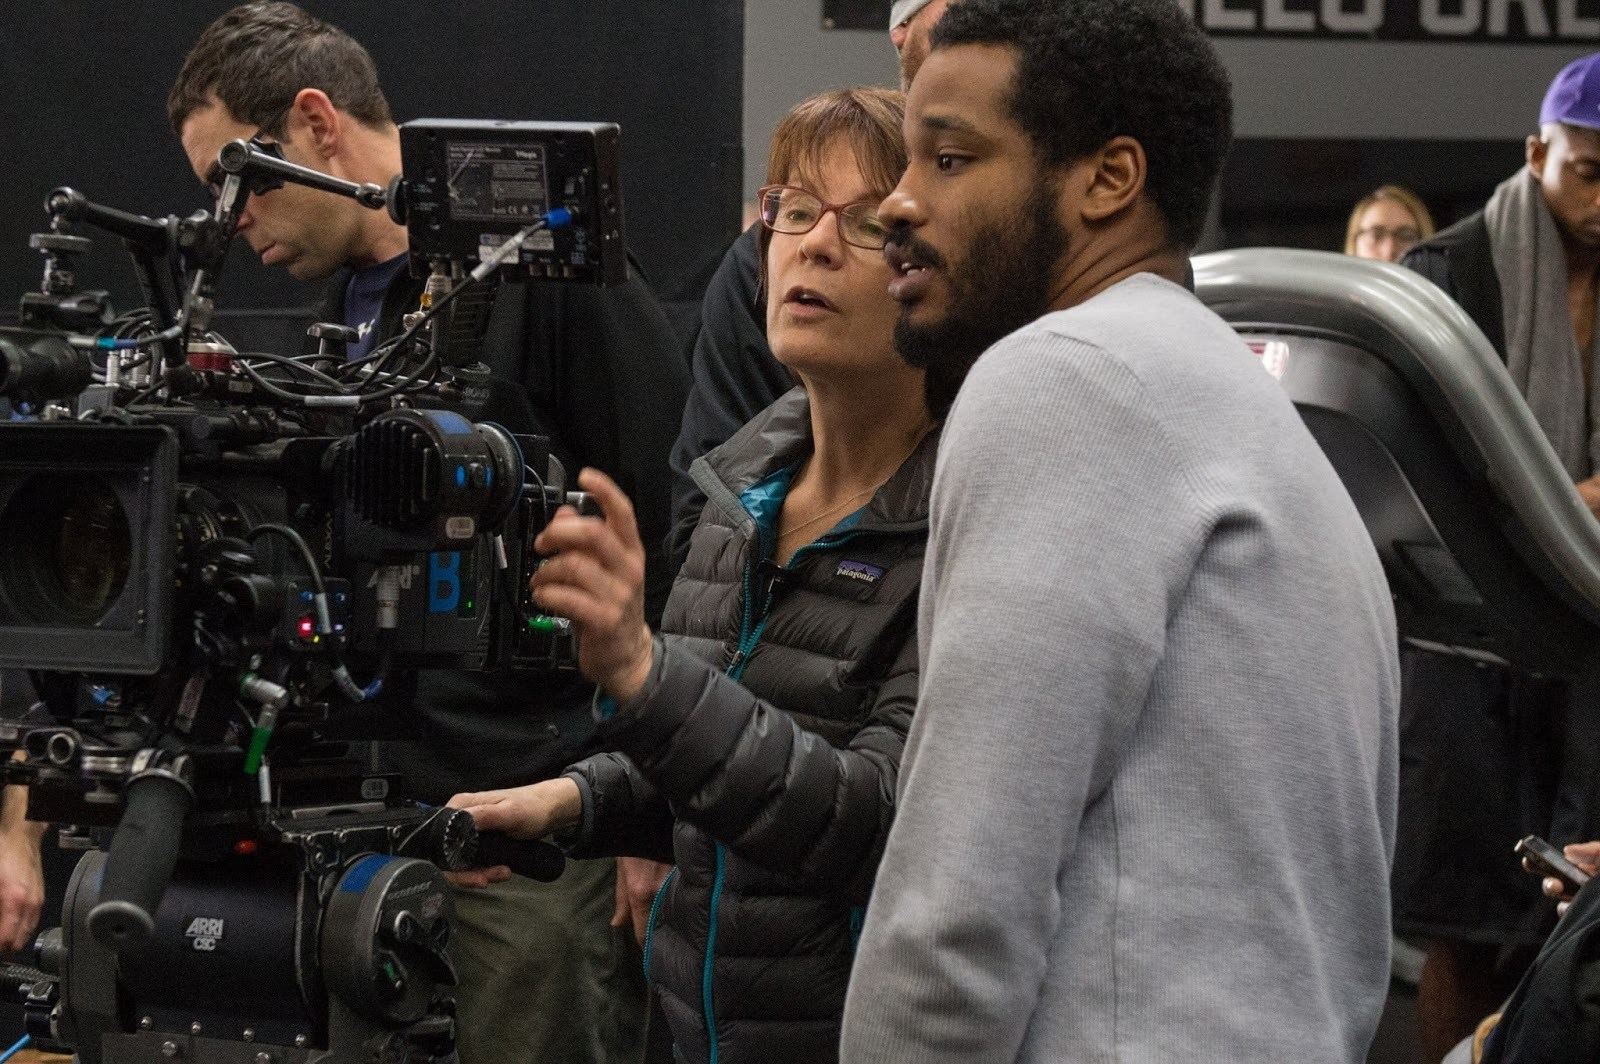 Creed Behind the Scenes Photos & Tech Specs